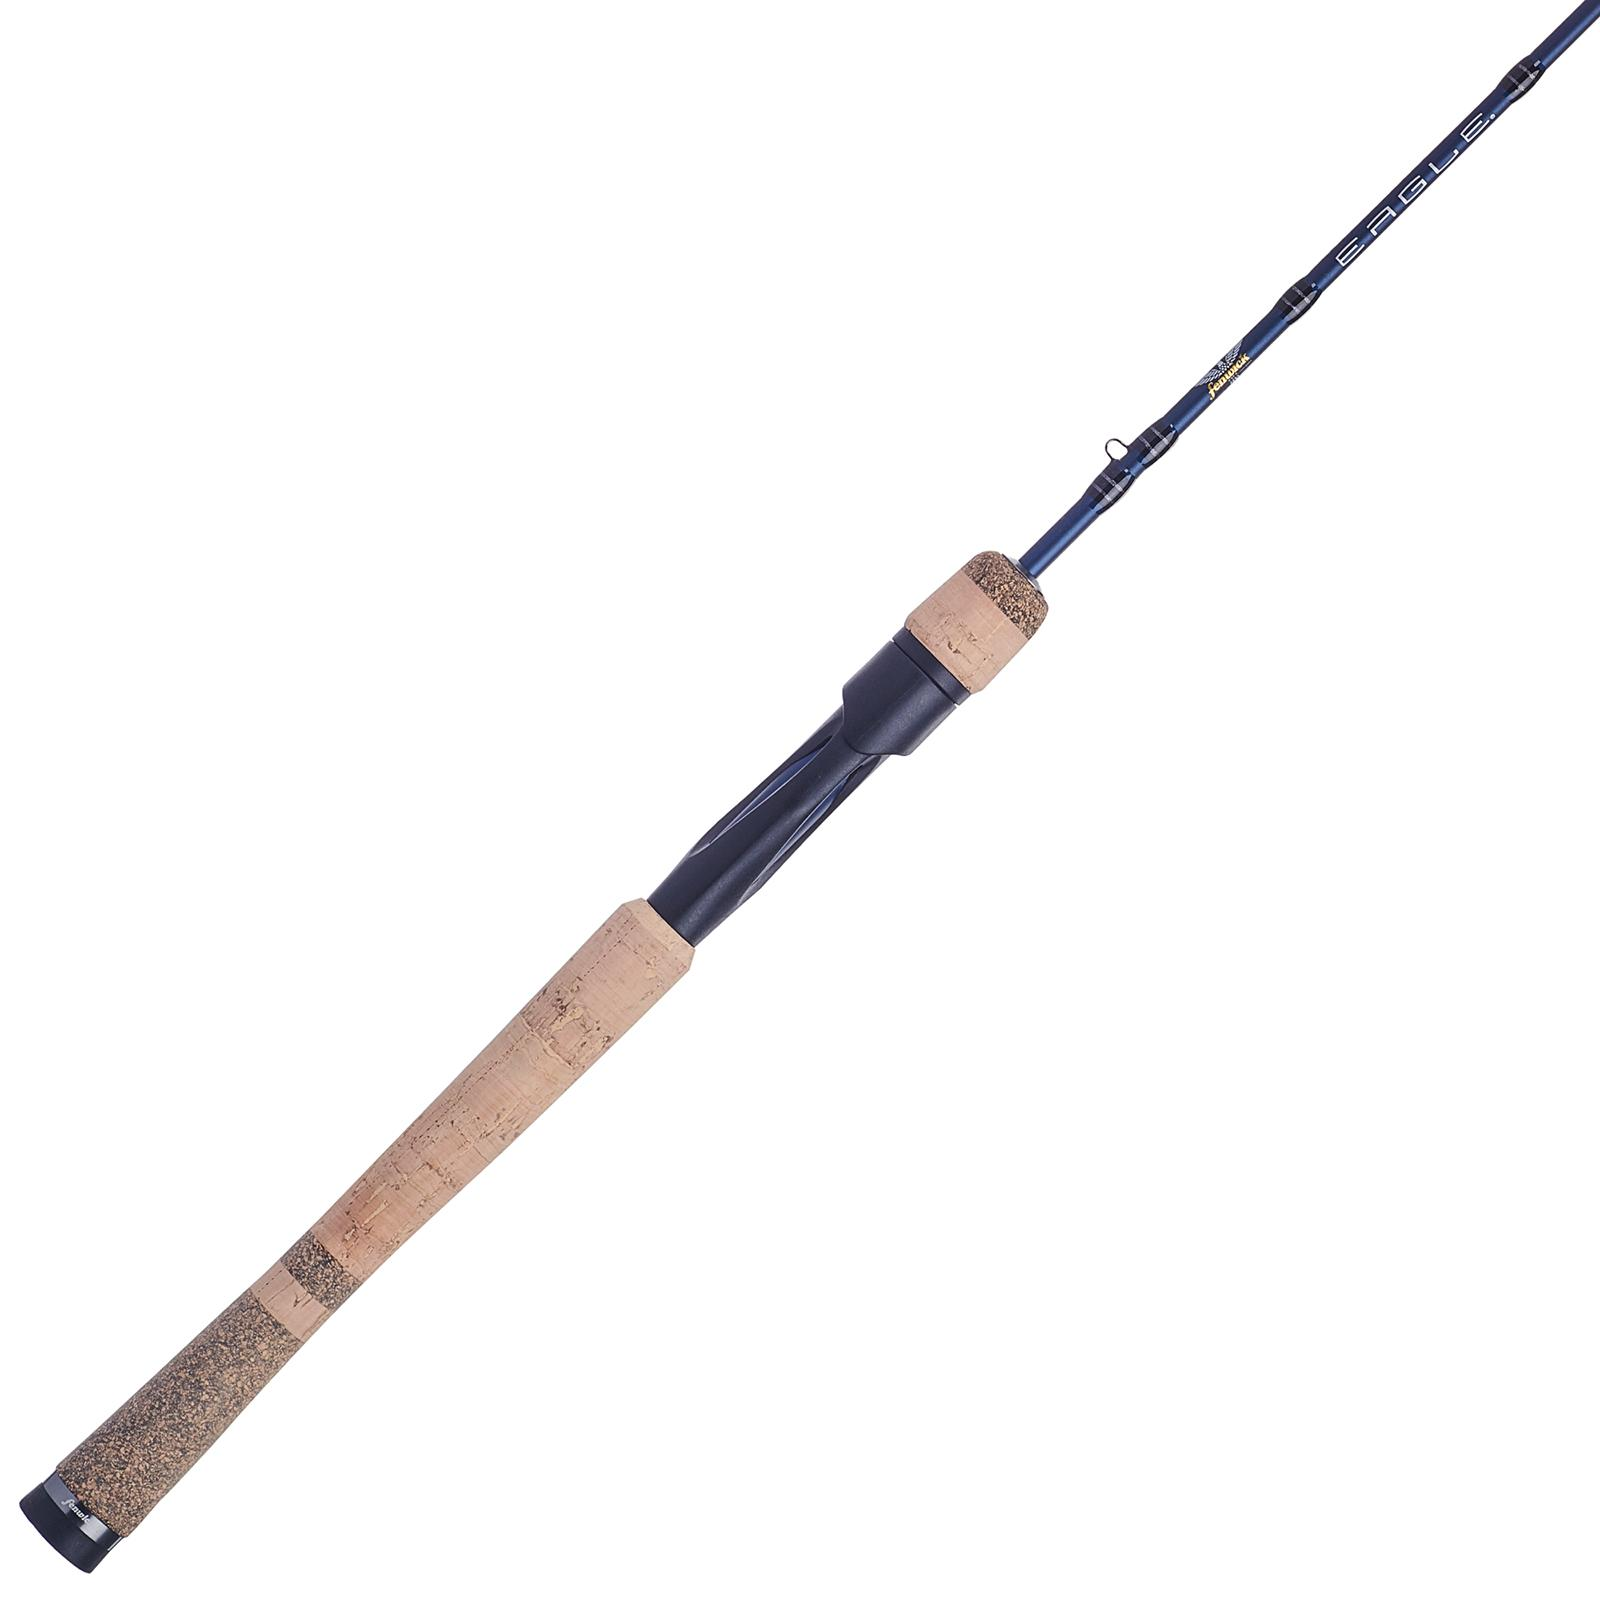 Fenwick Eagle 2 Spinning Rod